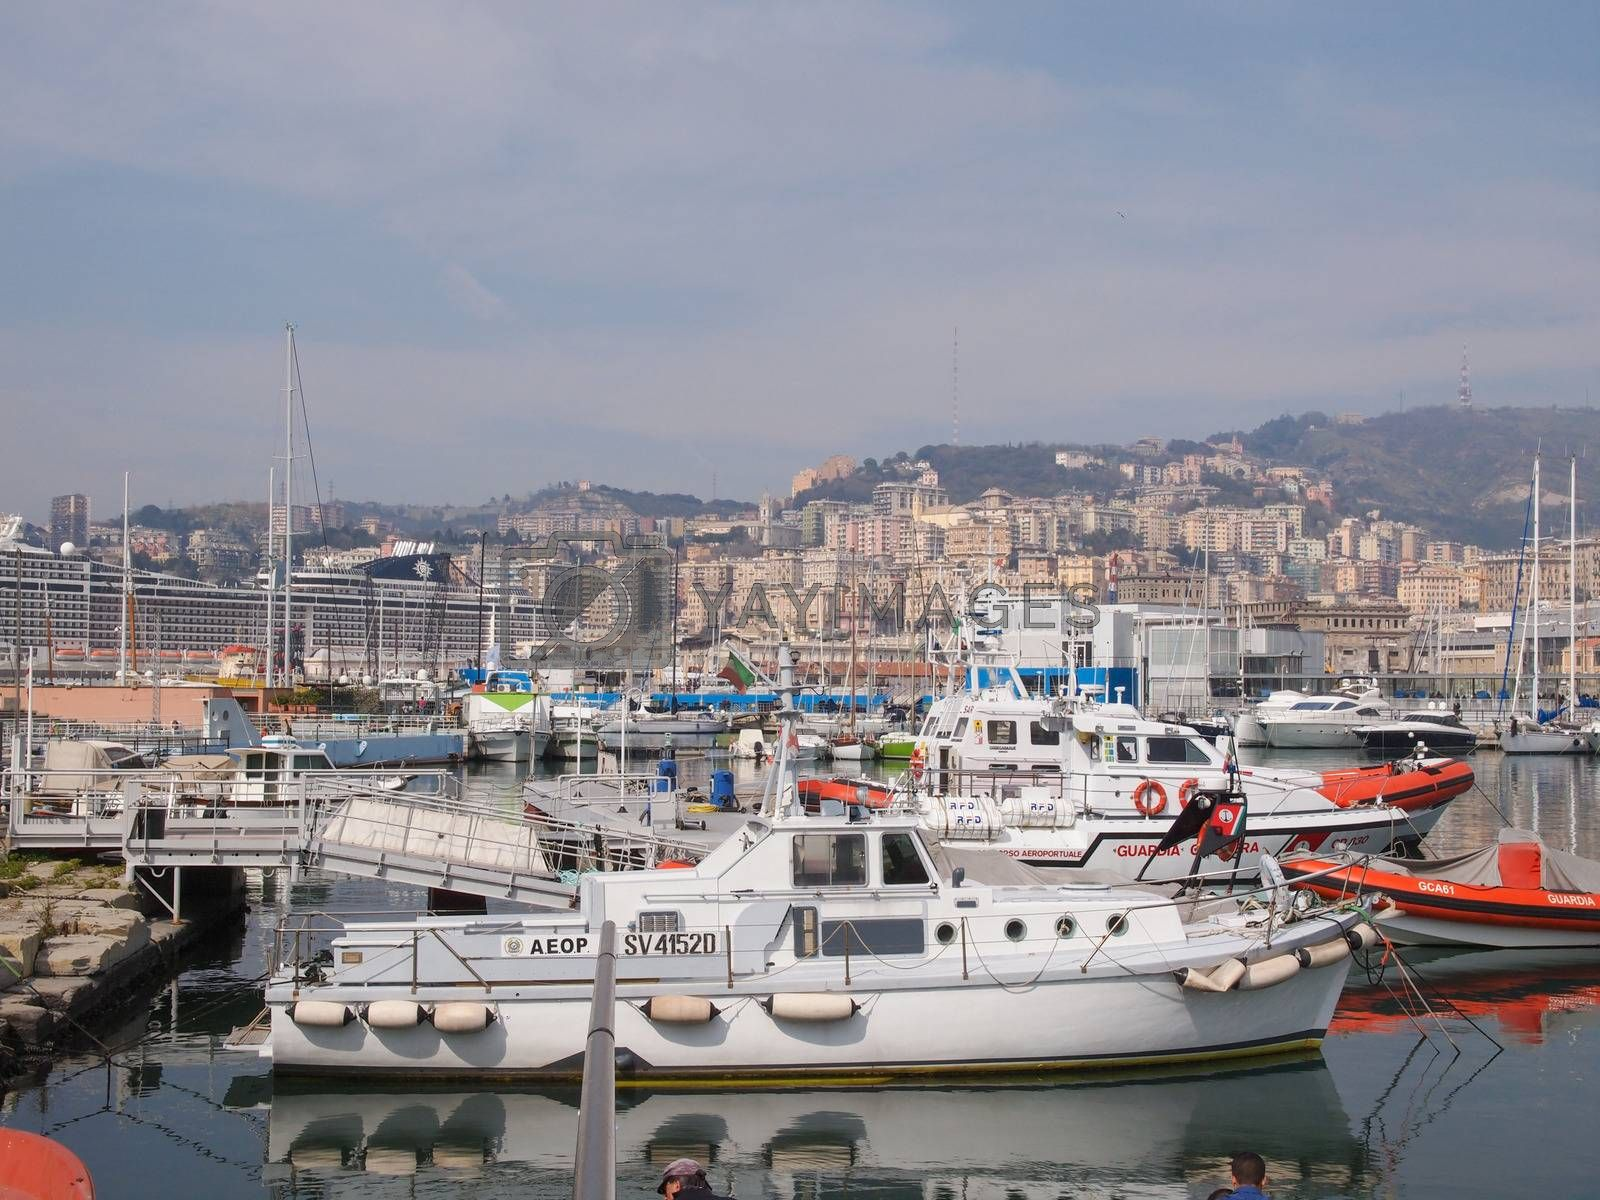 GENOA, ITALY - MARCH 16, 2014: Since the construction of the new harbour for merchant ships, the old harbour called Porto Vecchio is still in use for cruise ships and small boats